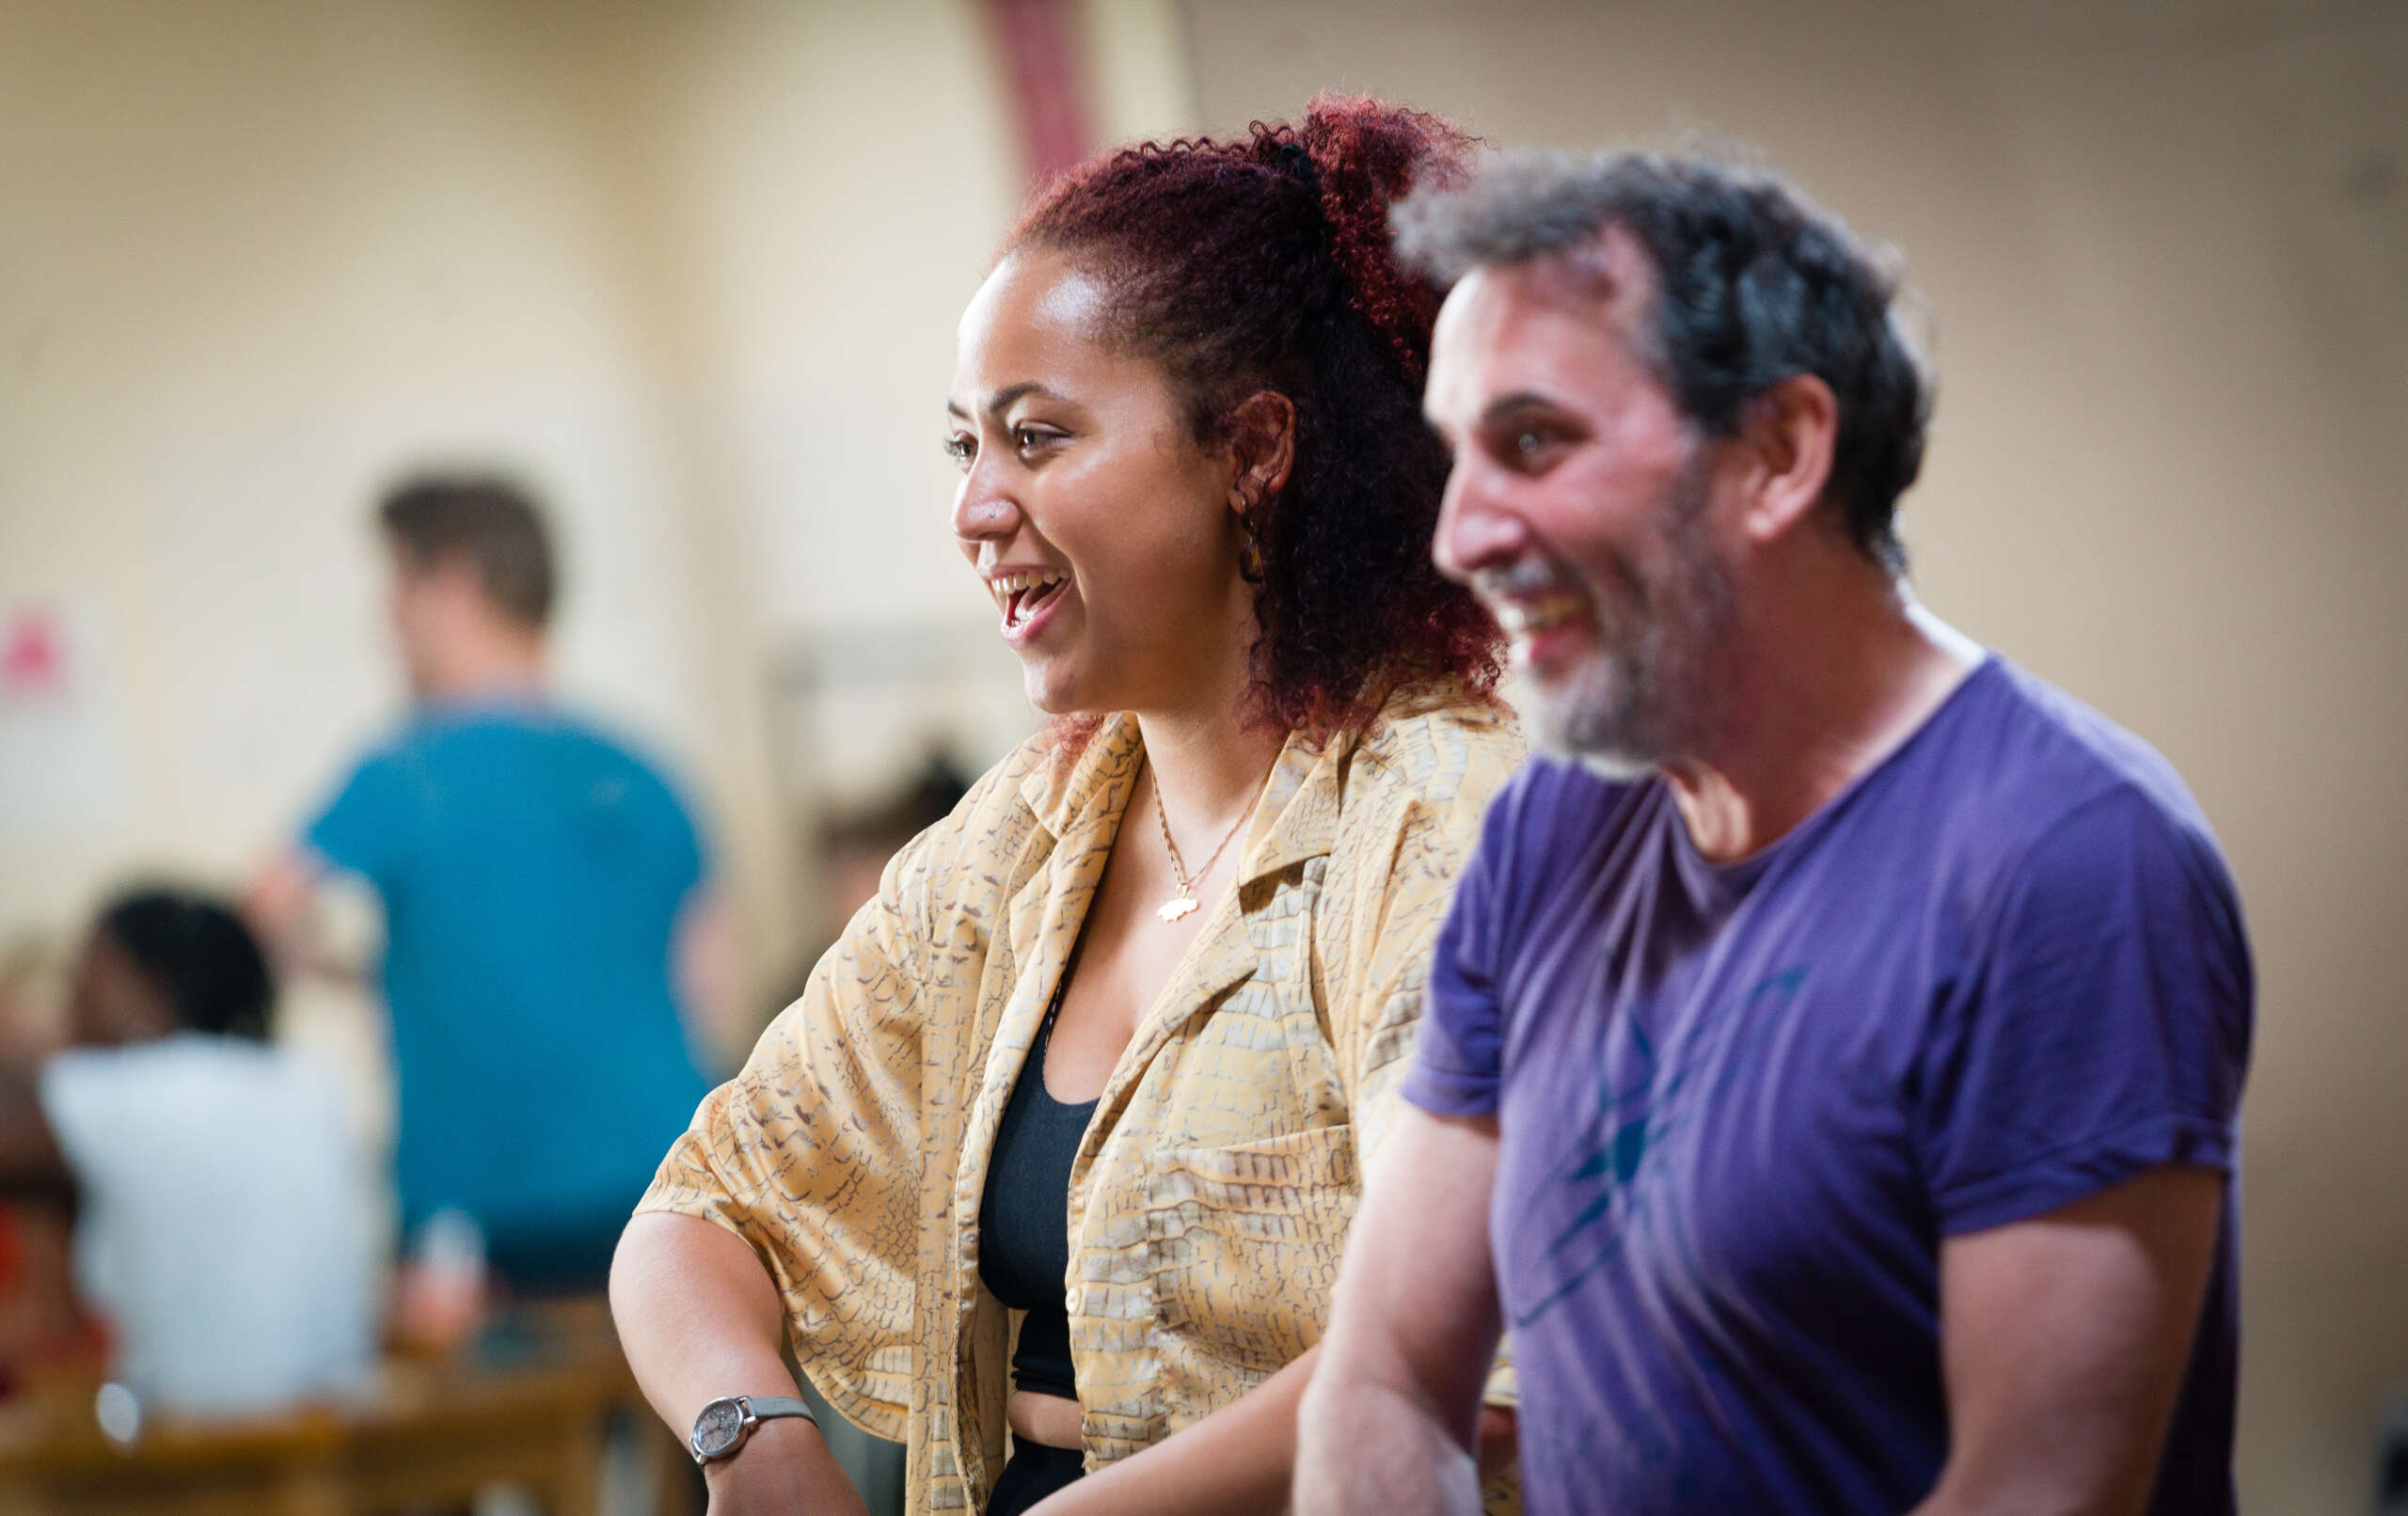 A young woman and man smiling in a rehearsal room